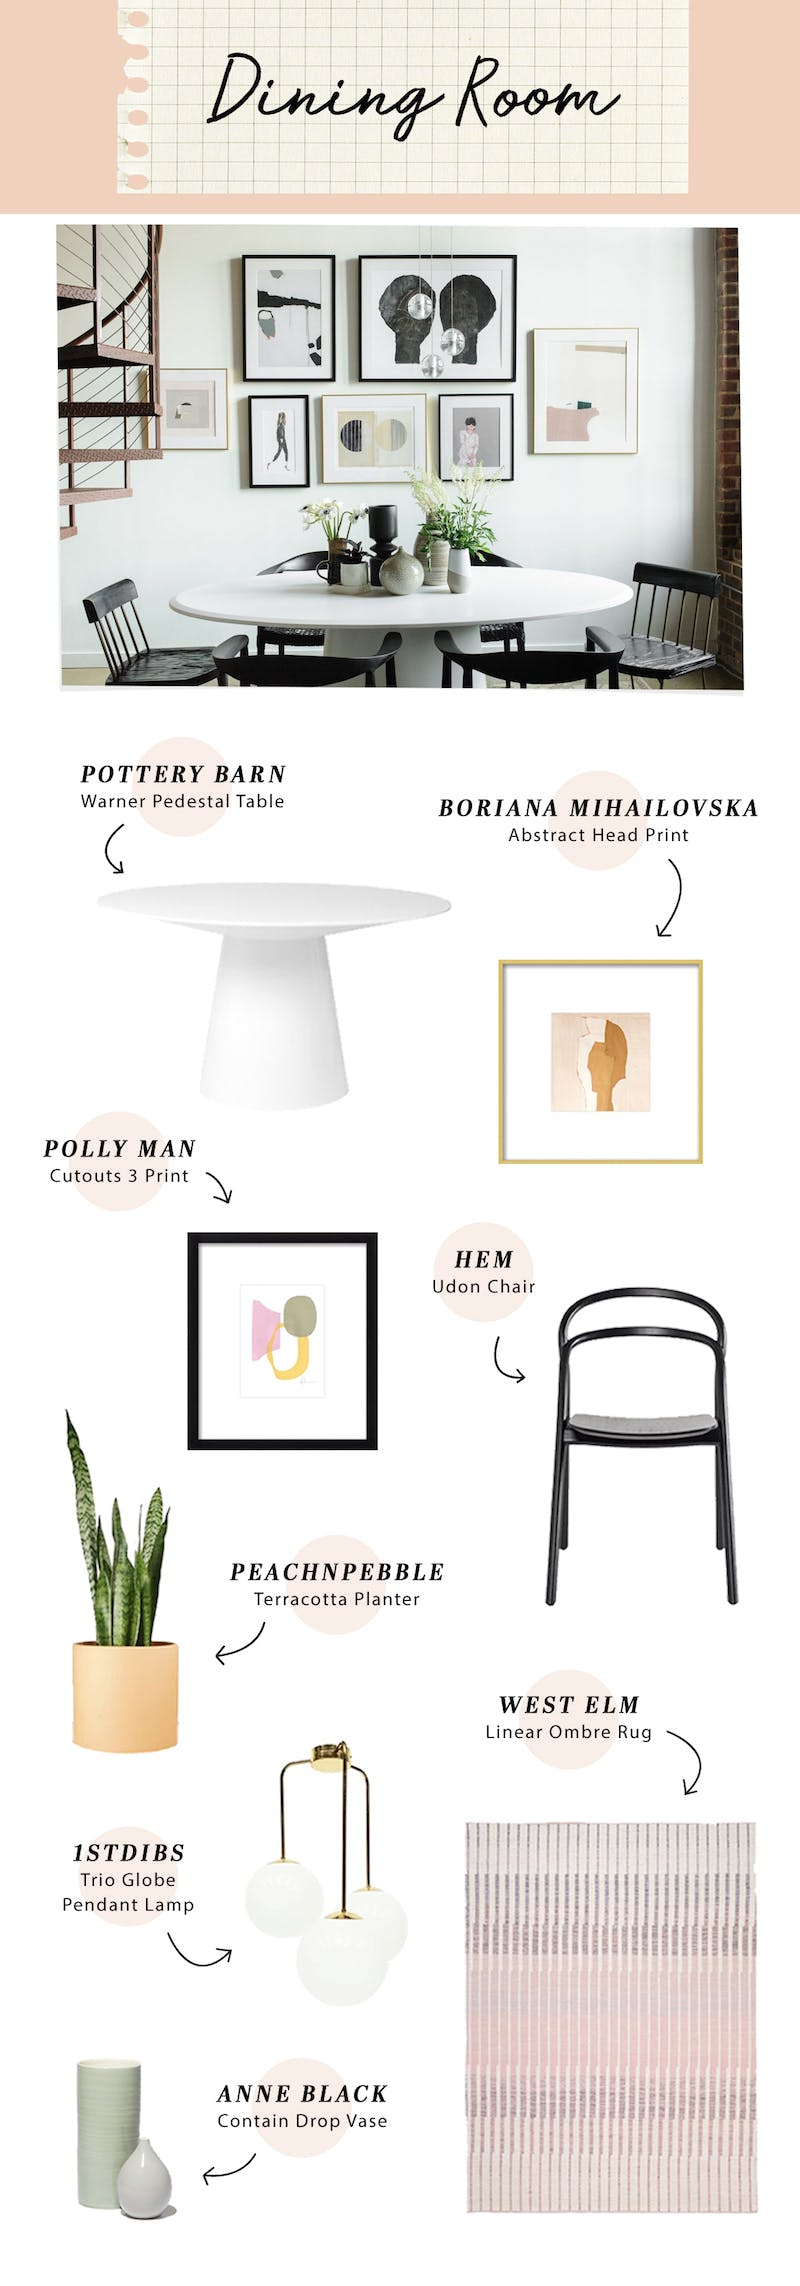 jamie chung mini apartment decor ideas get the look dining room pottery barn accent table brit coastal lamps cottage drum throne with backrest wells chair dividers large turned